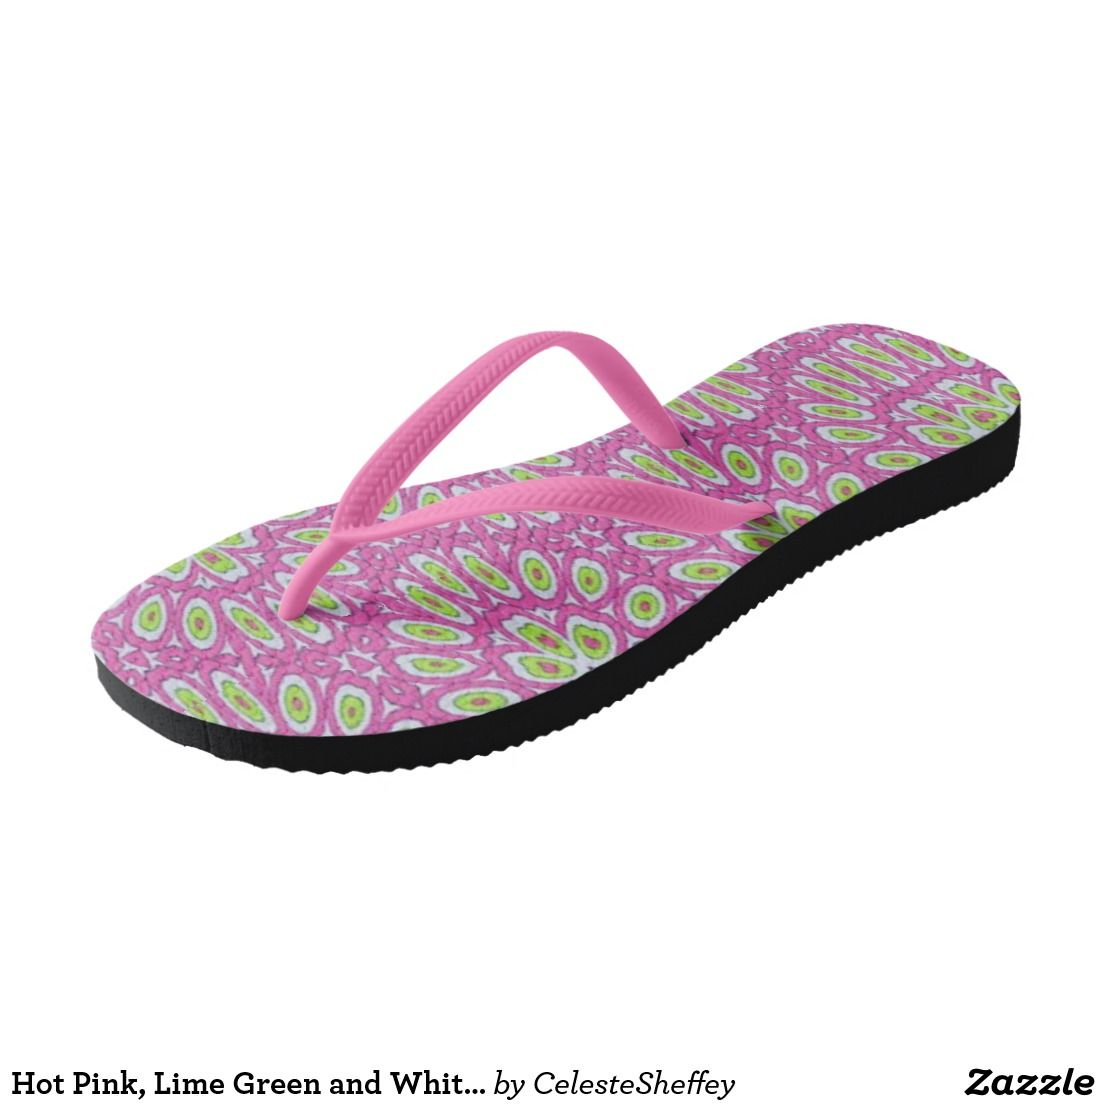 Hot Pink, Lime Green and White Pop Art Flip Flops